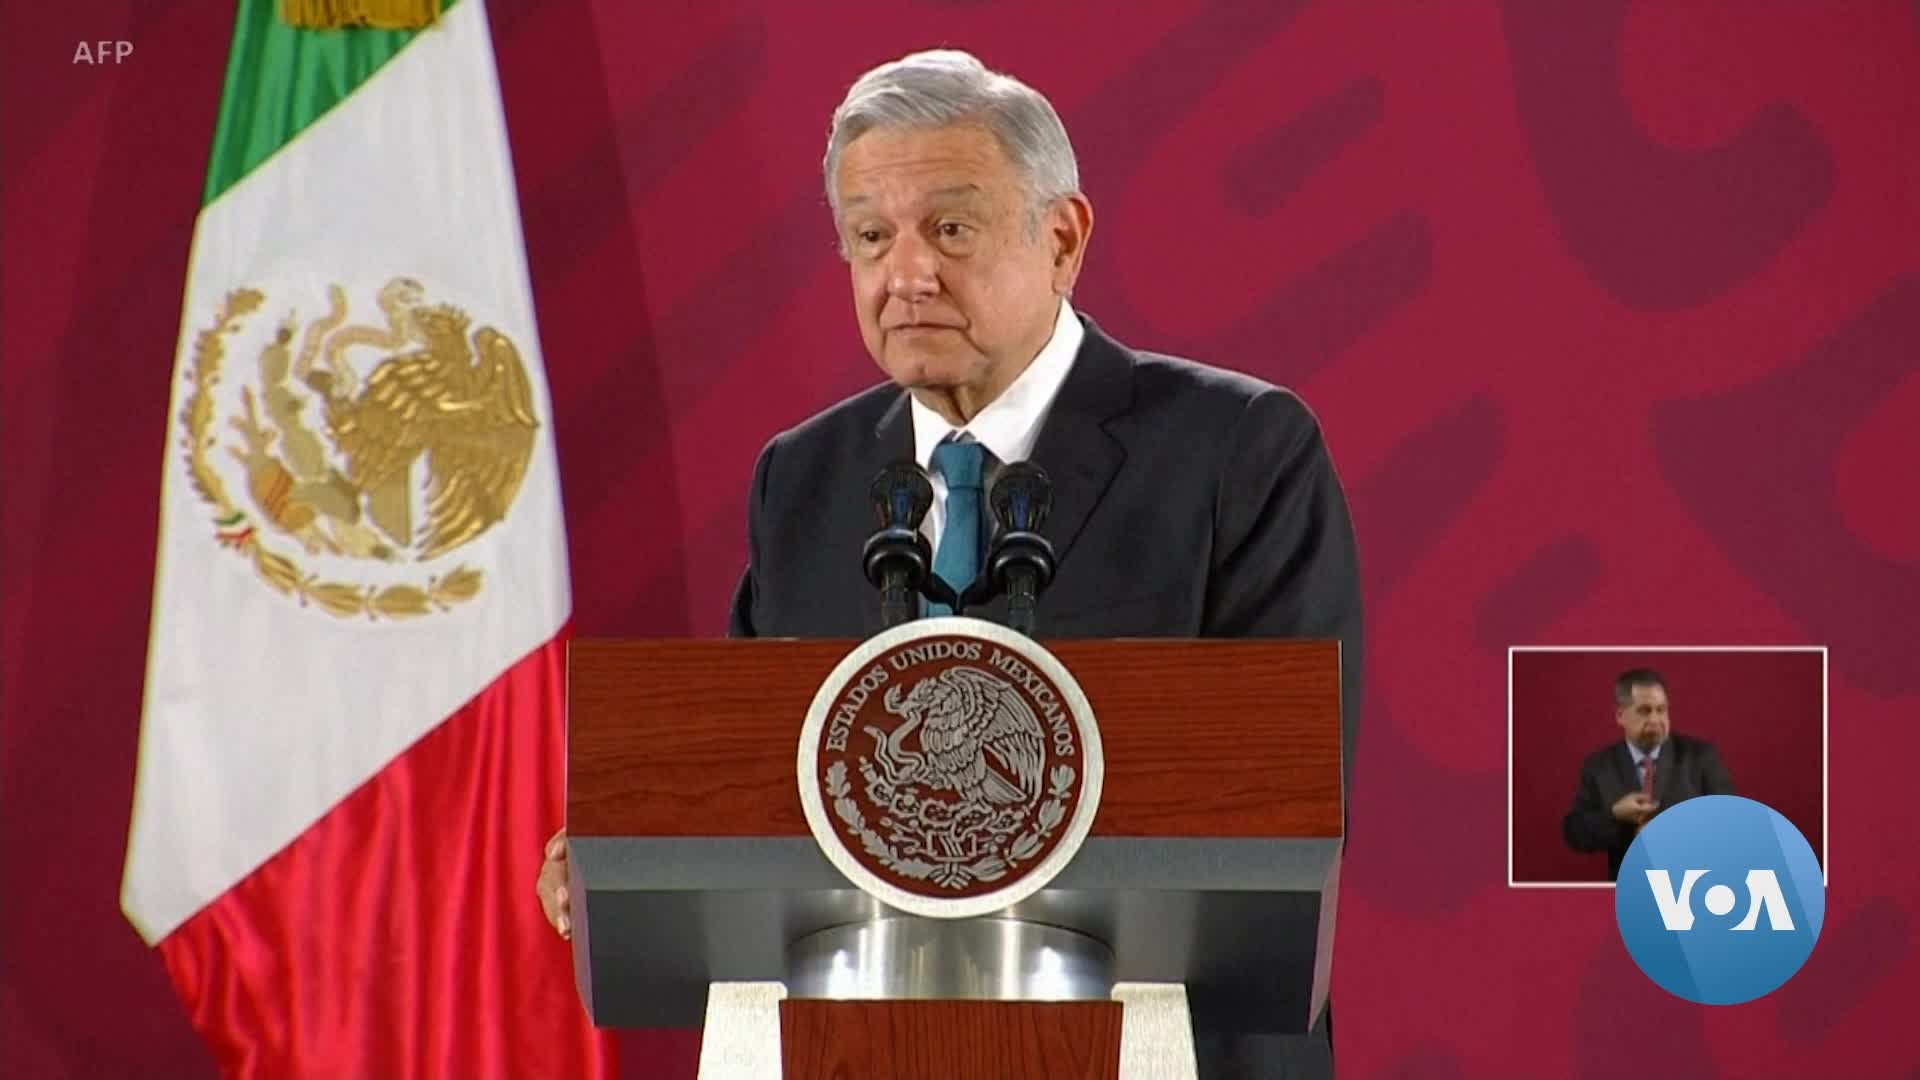 Mexico's President Dismisses Trump's Suggestion About Waging War on Drug Cartels